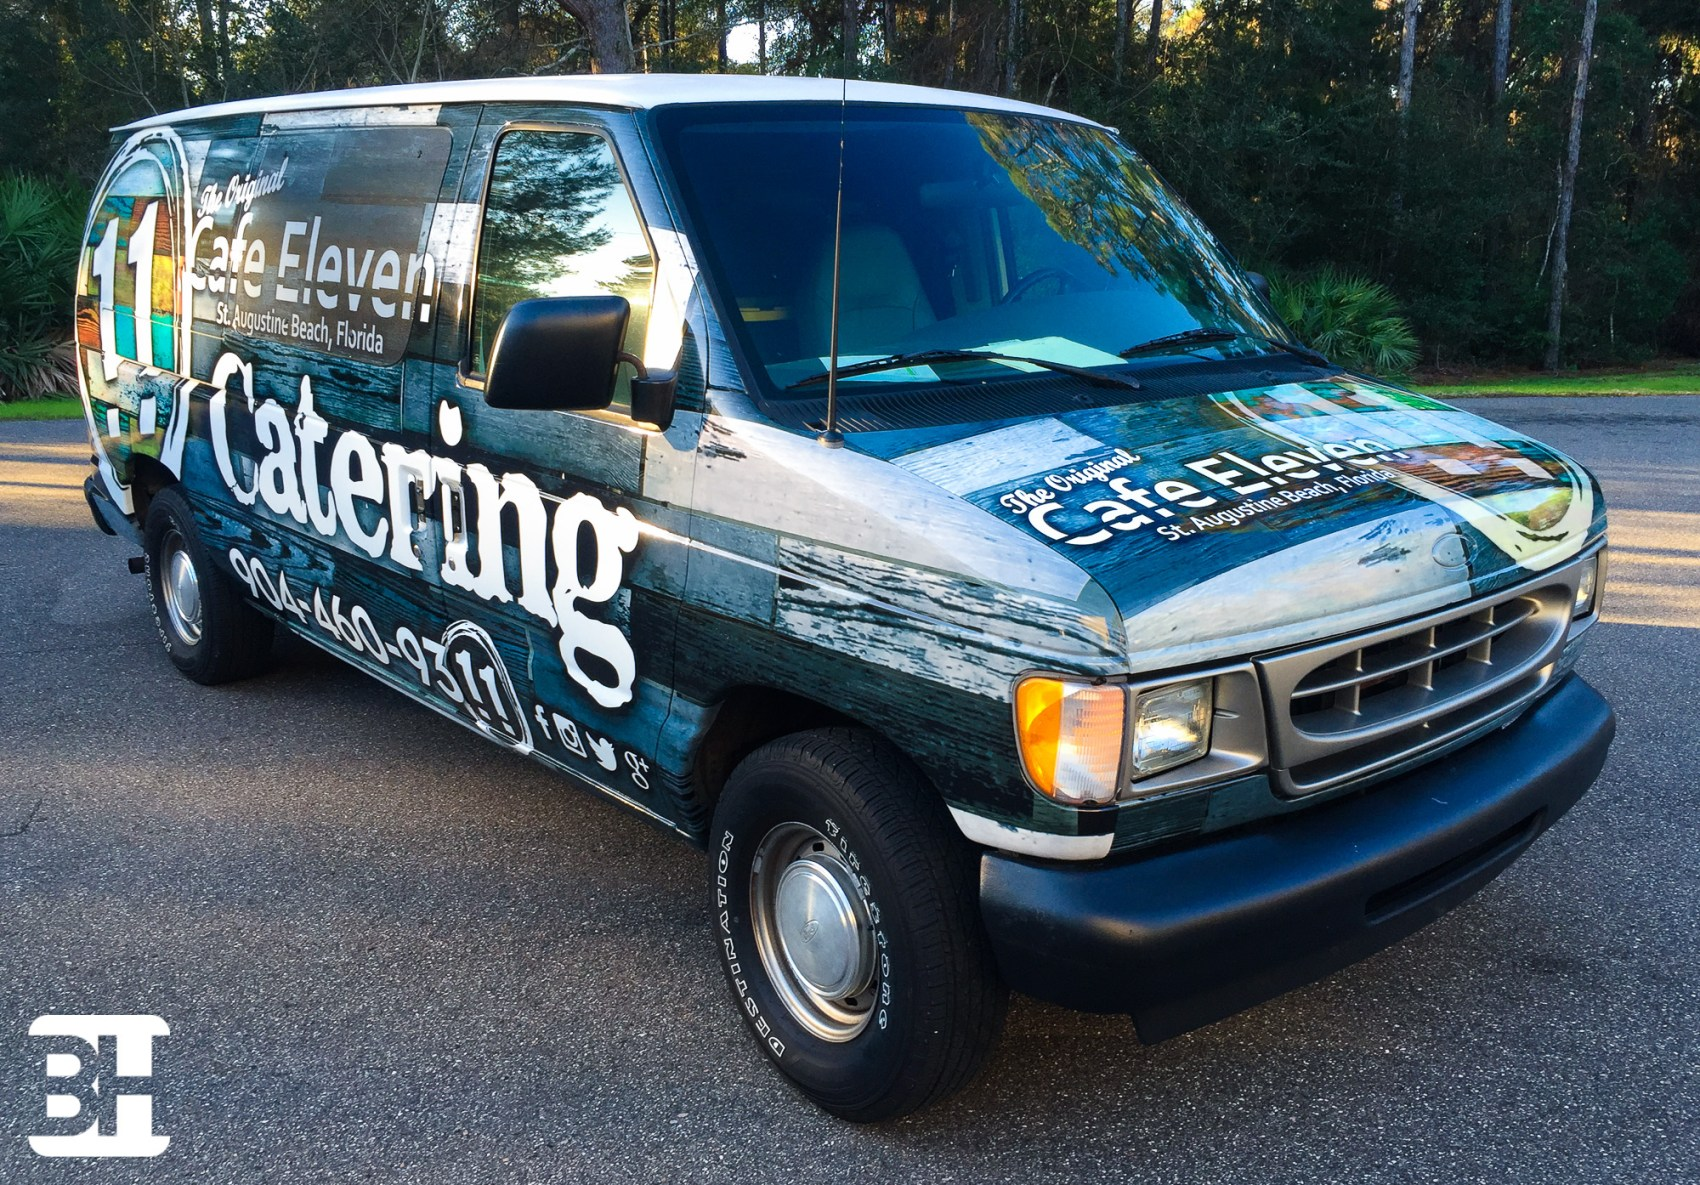 Food service vehicle wrap, graphics, van wraps, truck